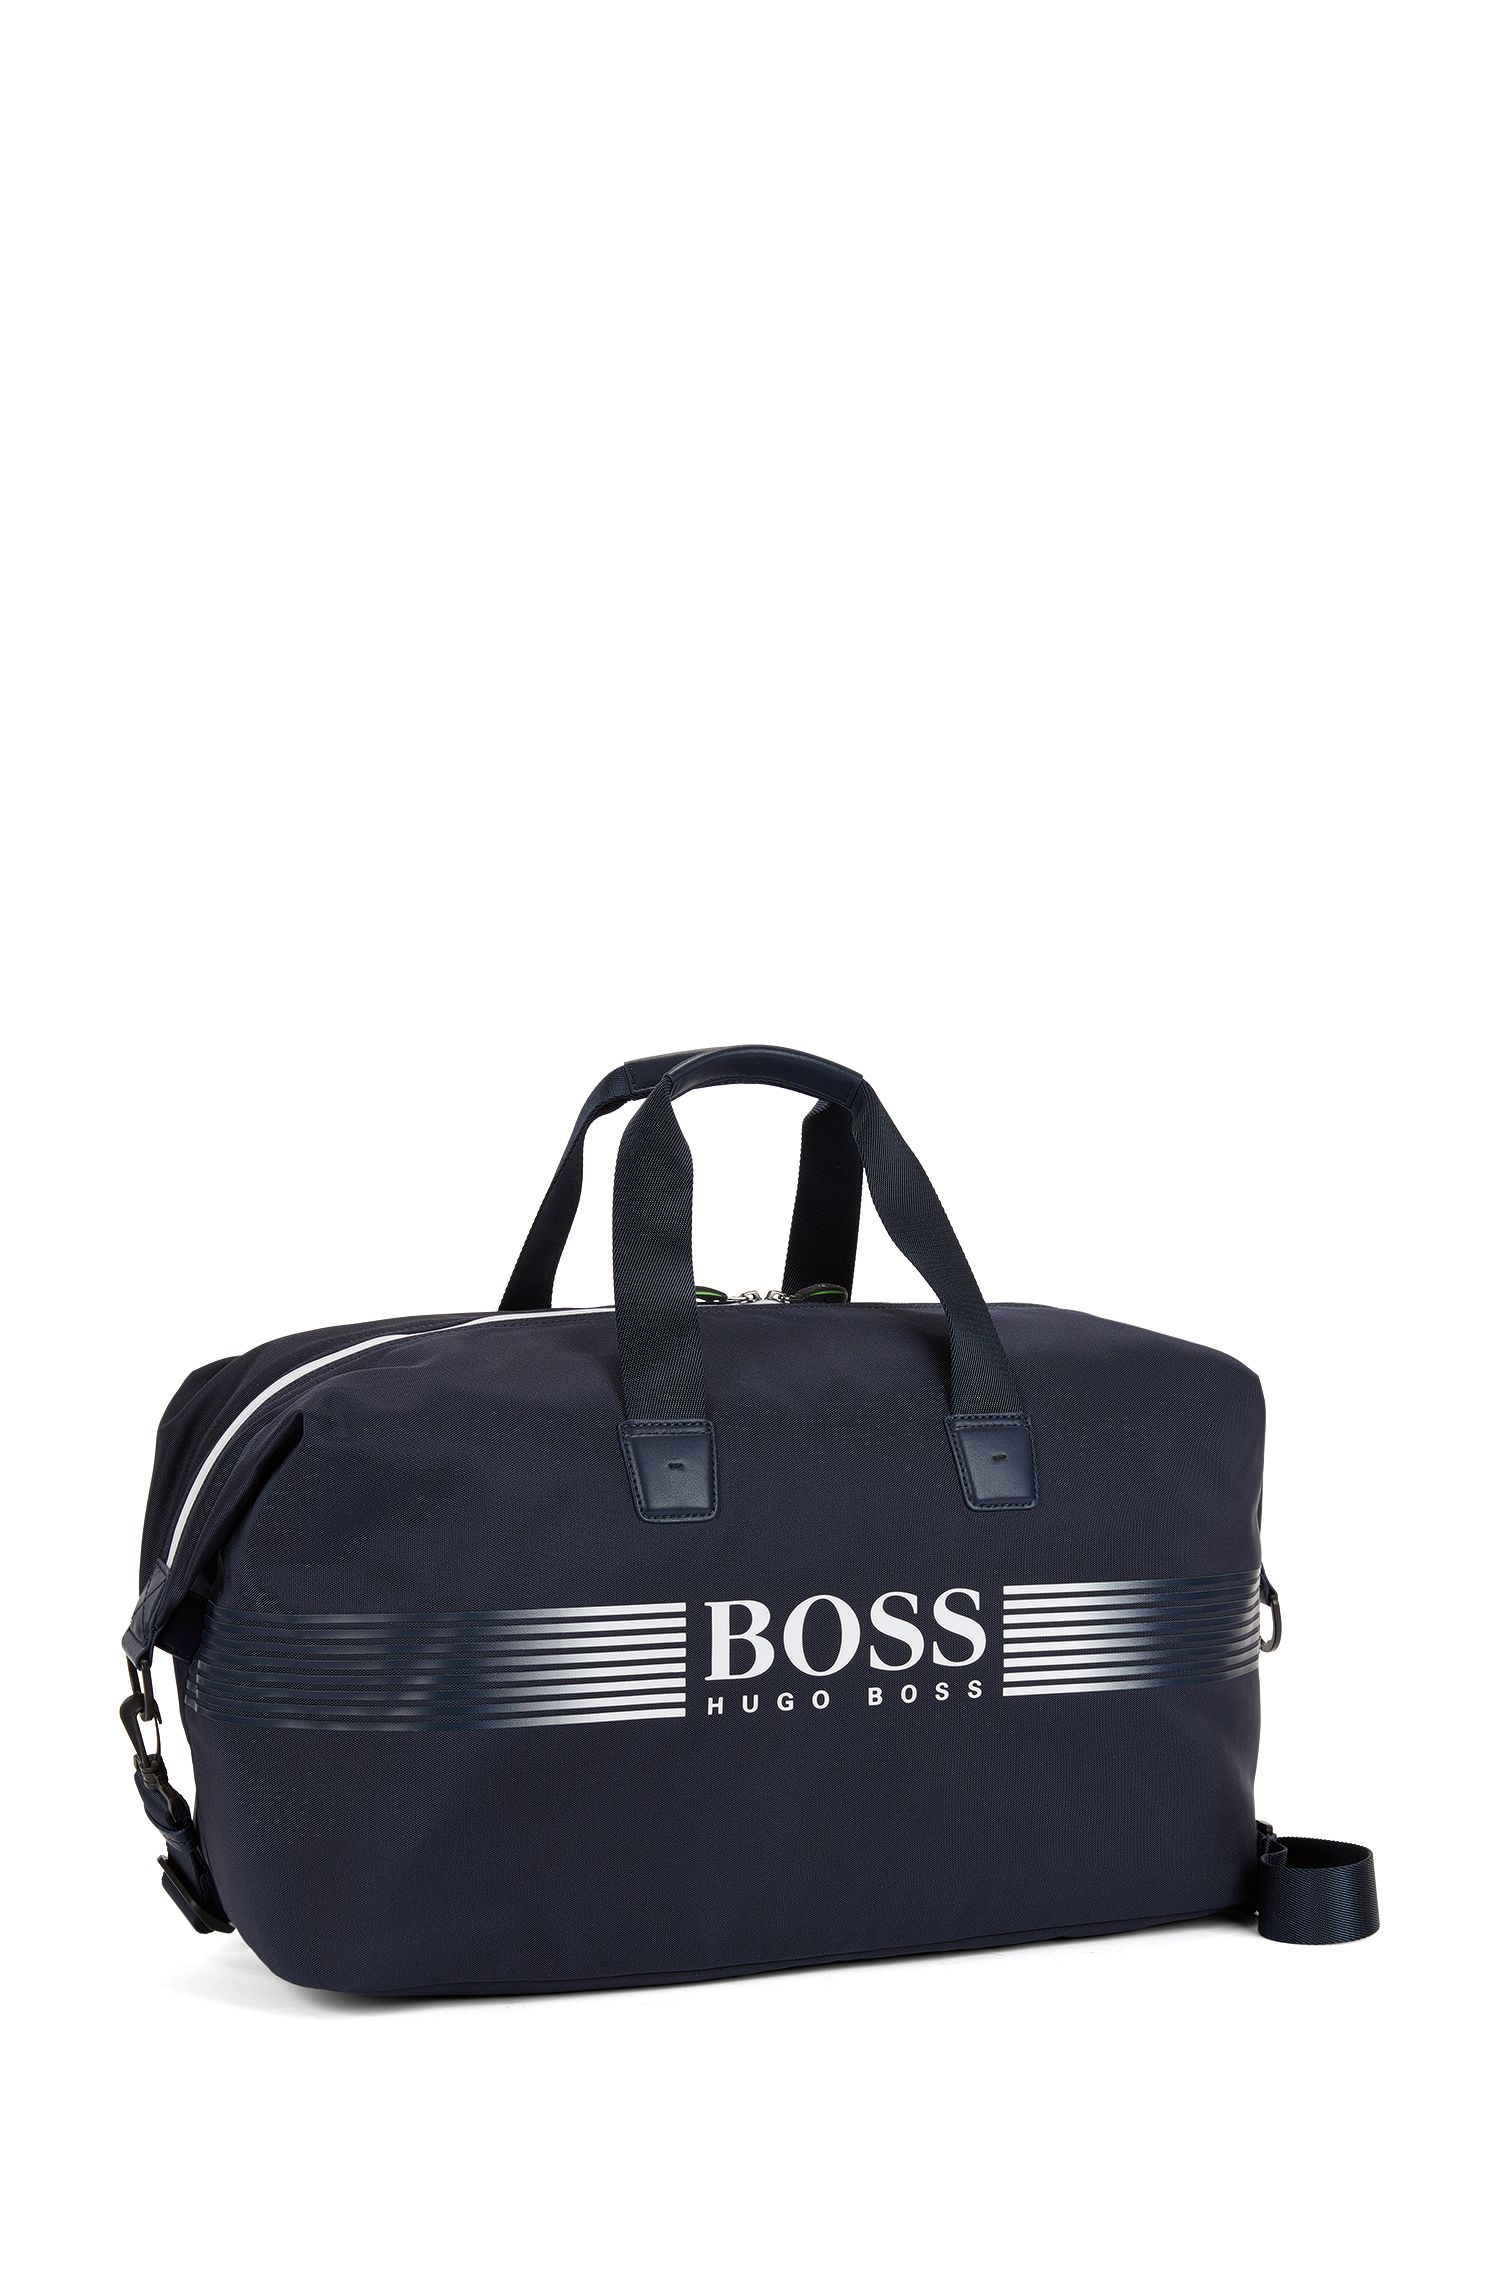 Nylon holdall with contrast logo